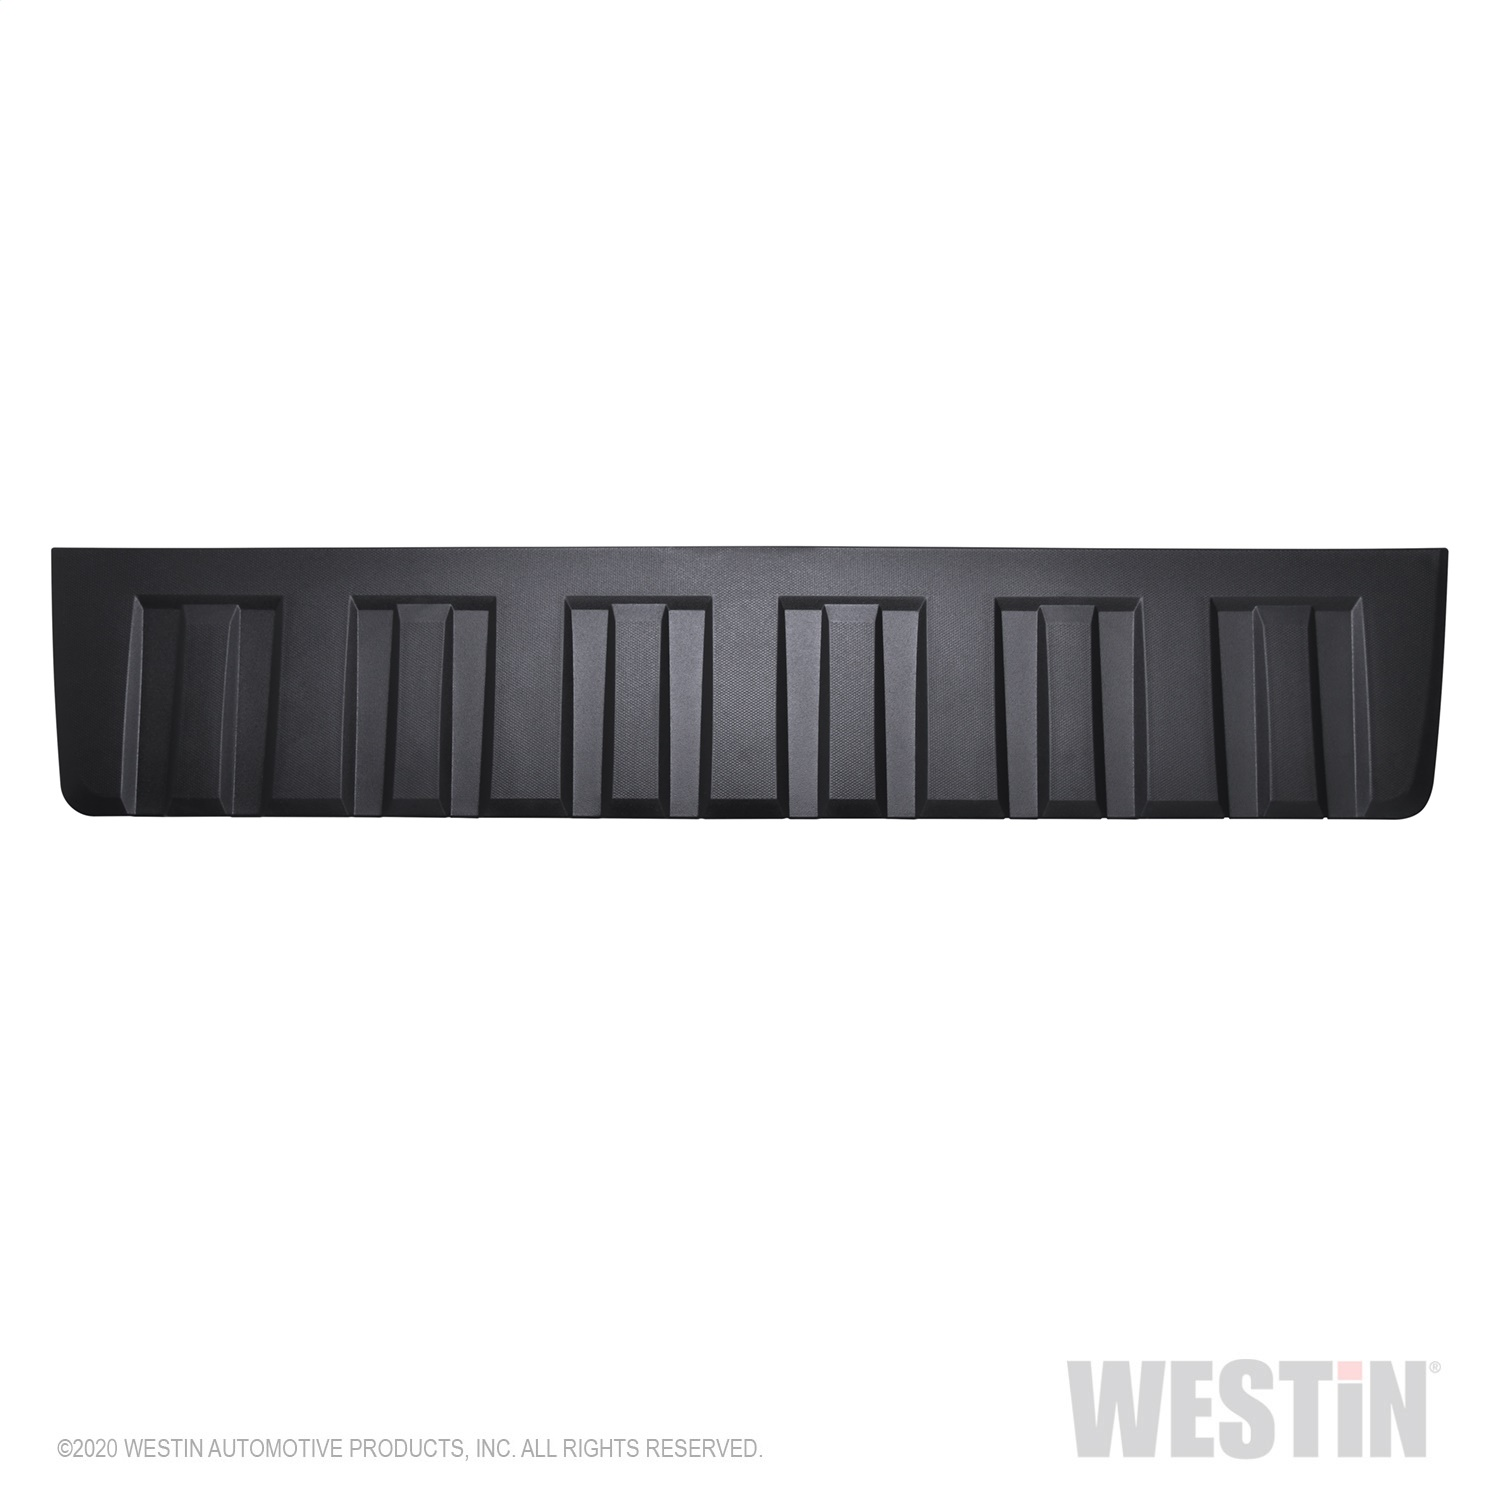 Westin 28-70001 R7 Replacement Step Pad Kit